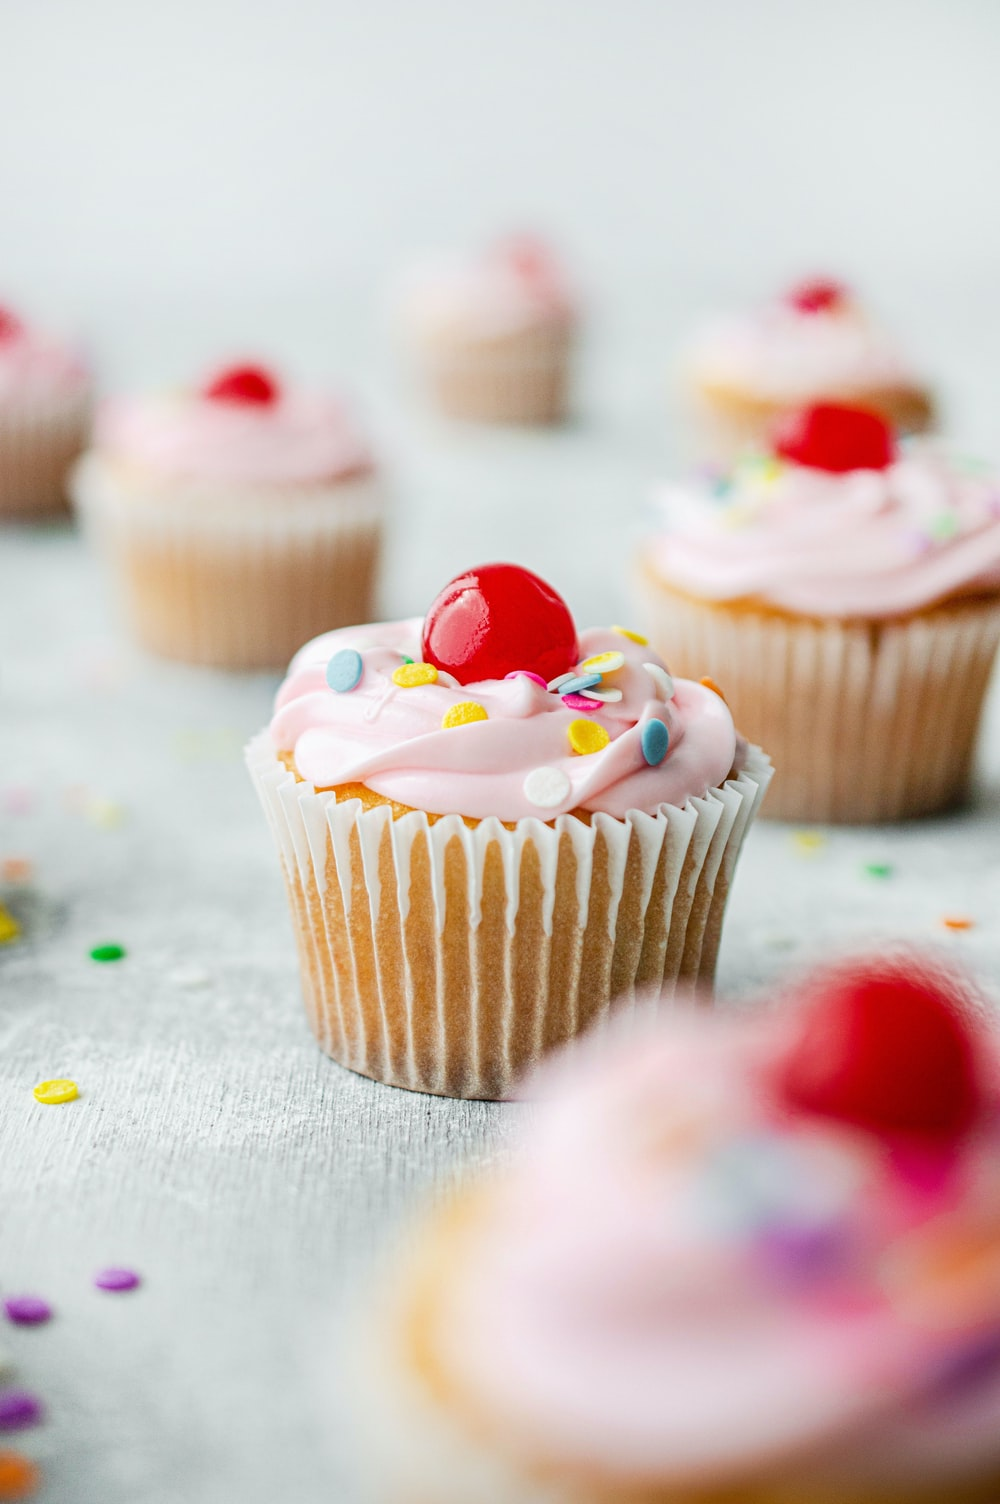 cupcake with white icing on top